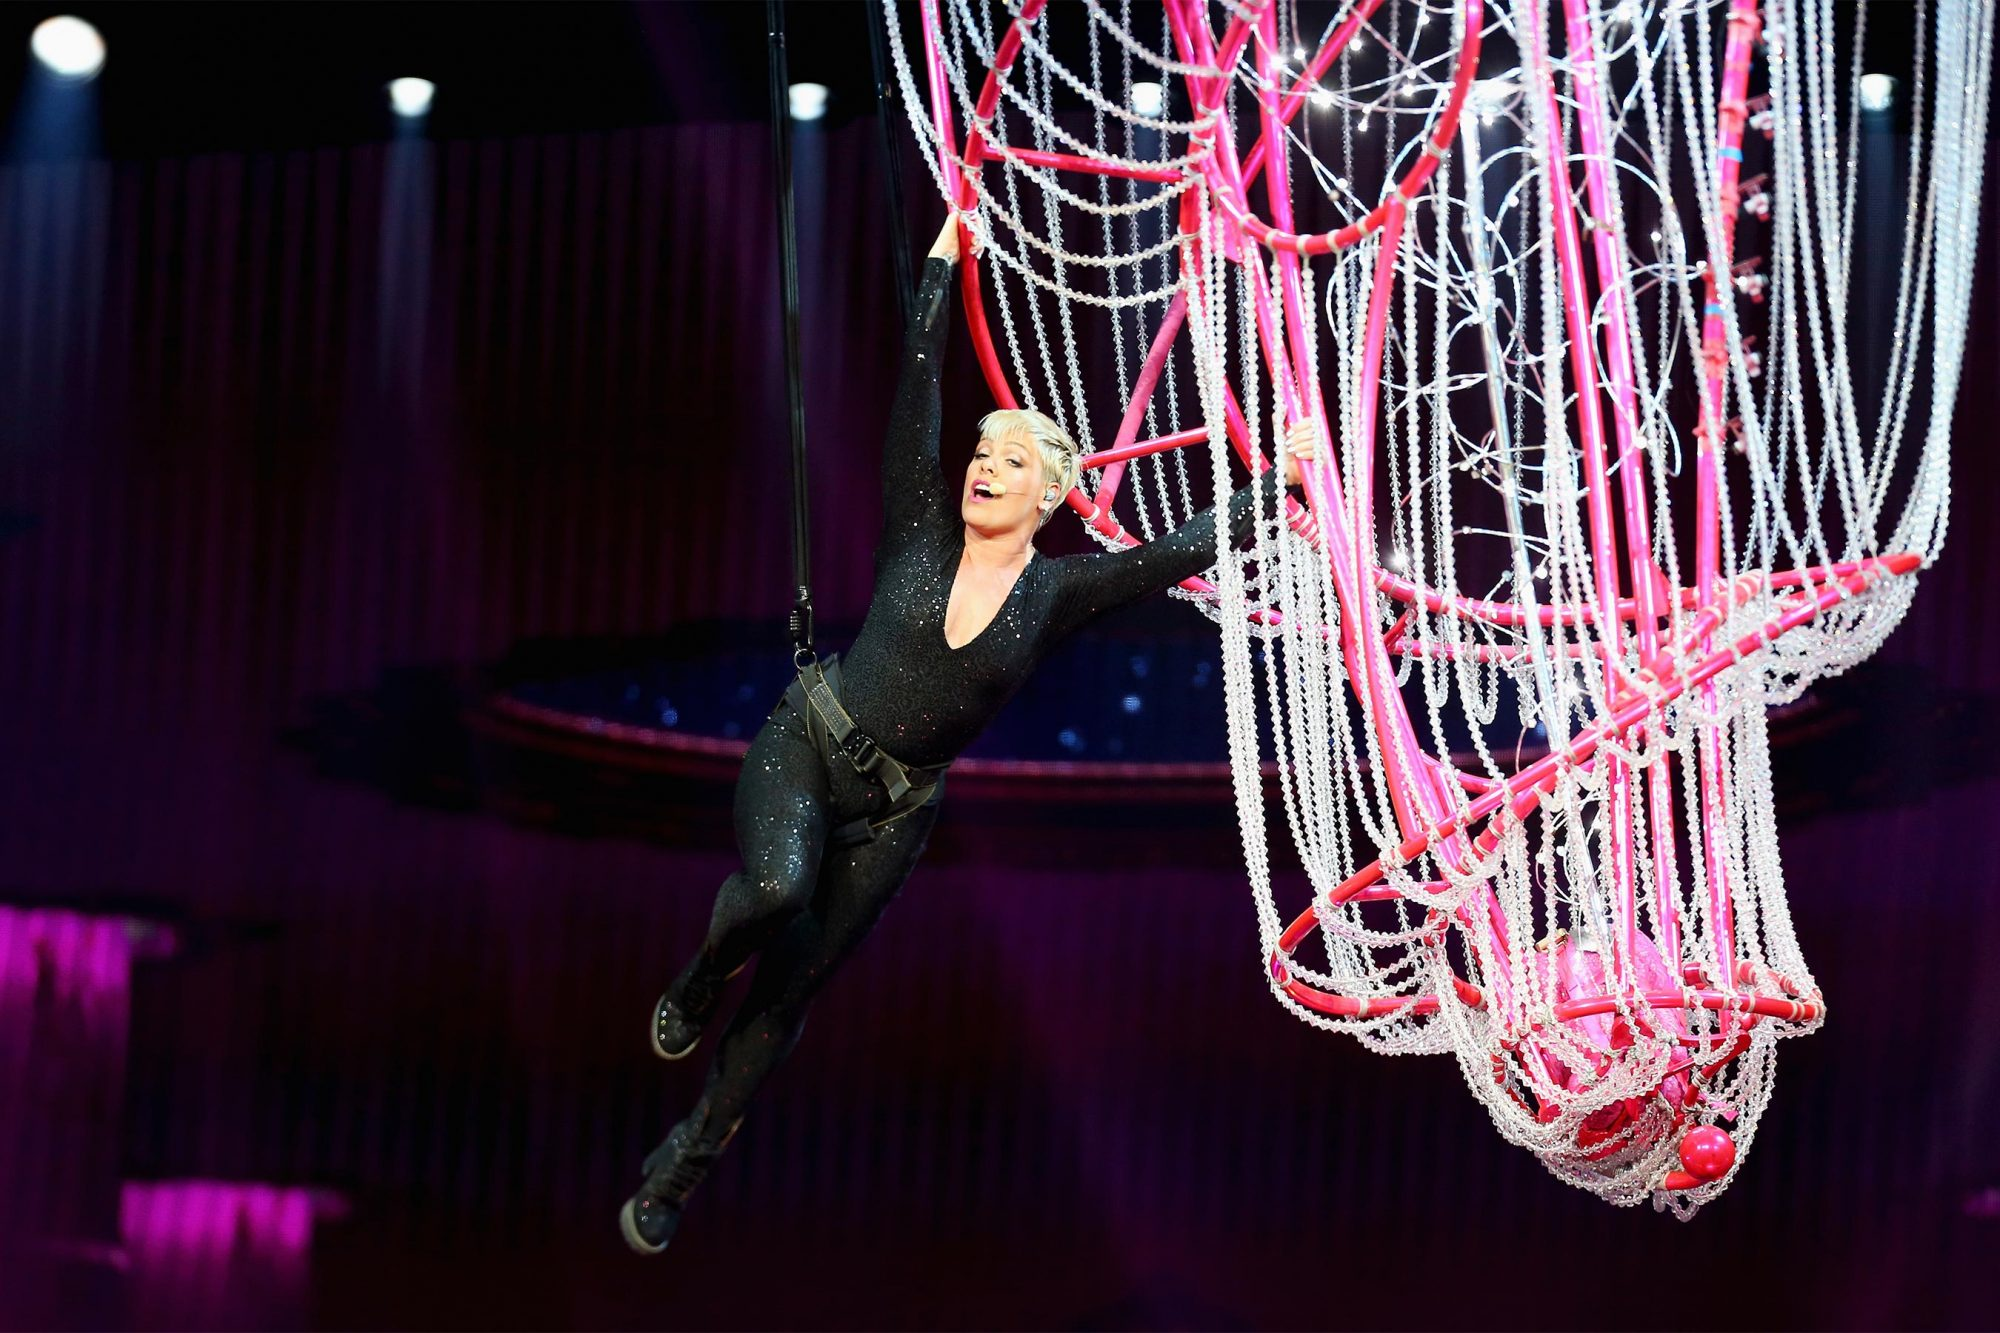 SYDNEY, AUSTRALIA - AUGUST 11: Pink performs at Qudos Bank Arena on August 11, 2018 in Sydney, Australia. (Photo by Don Arnold/WireImage) PINK Beautiful Trauma World Tour 2018 - Sydney P!nk